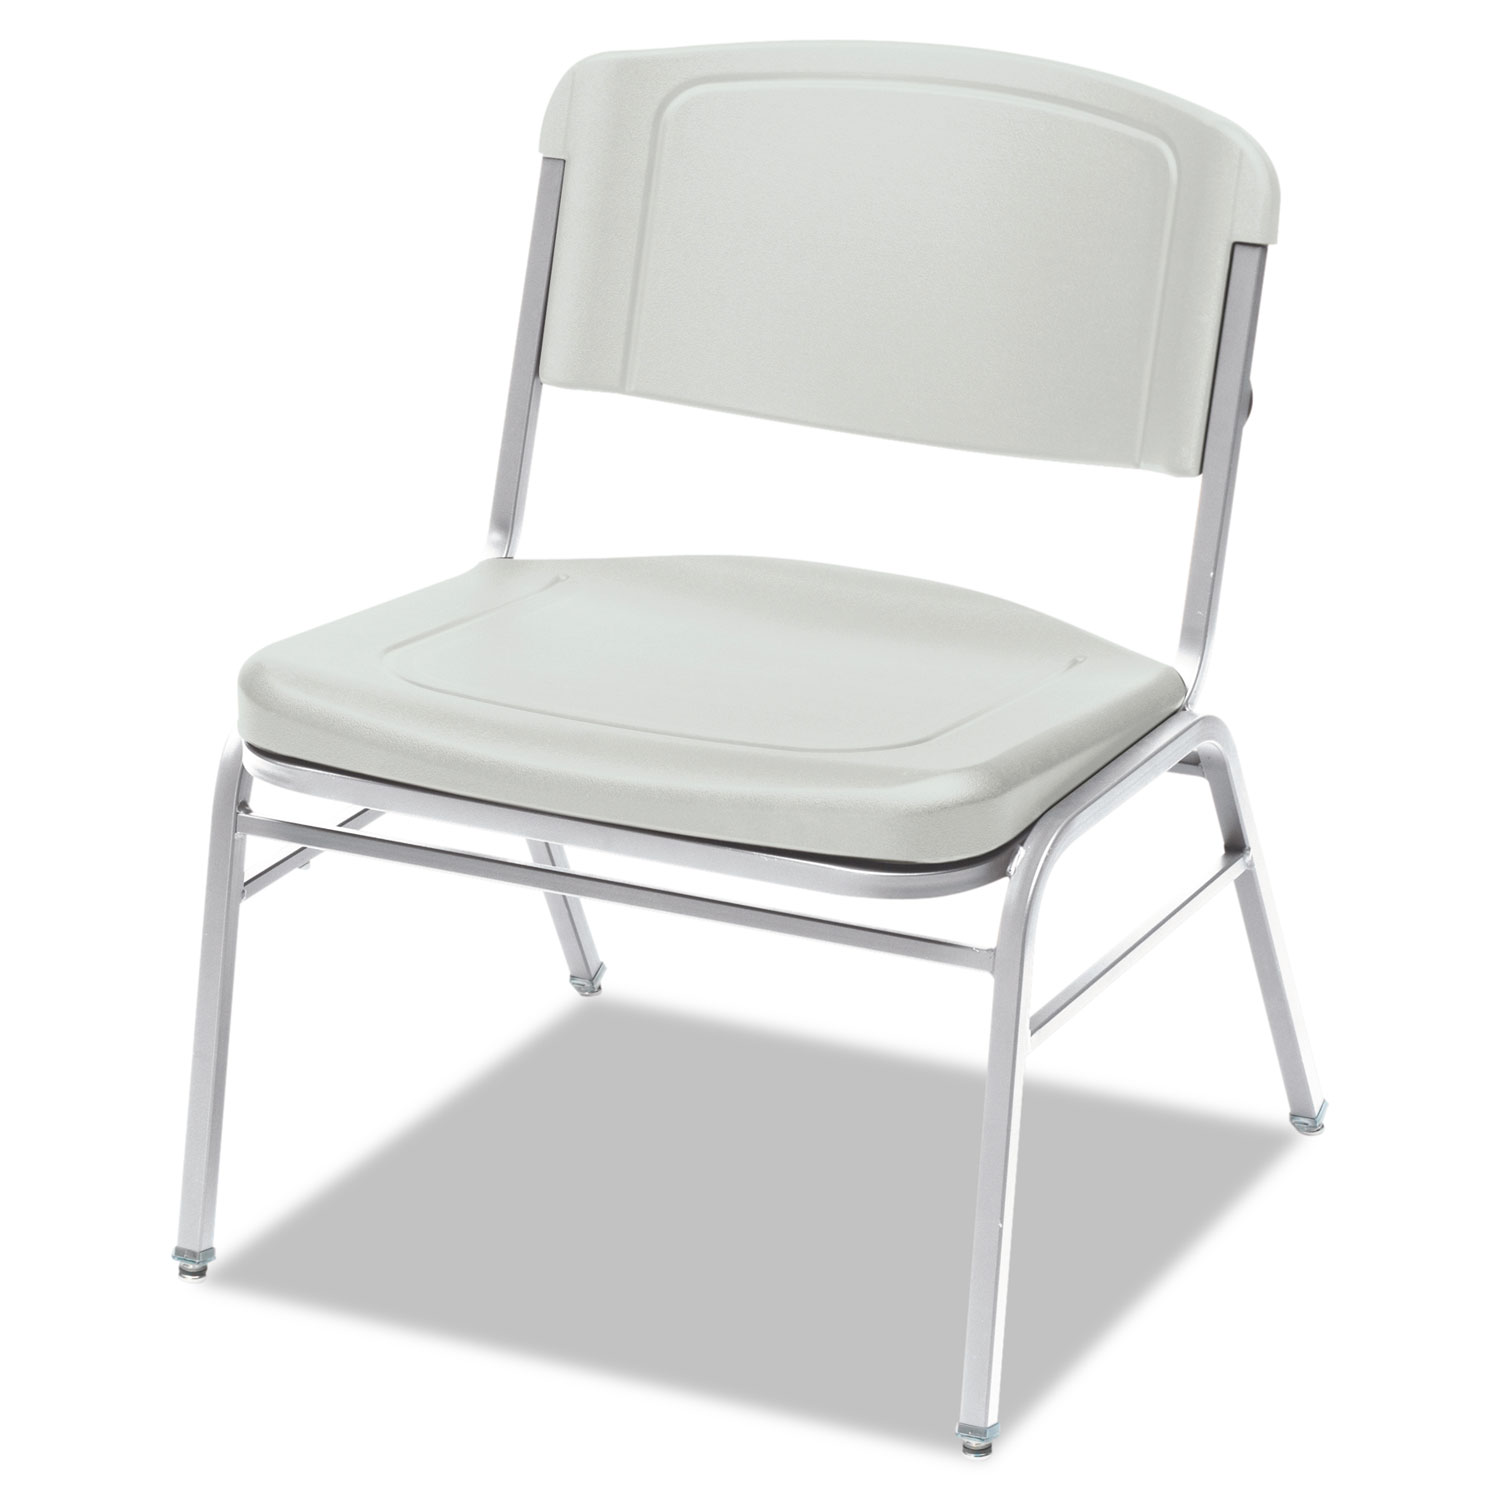 Rough n ready series big tall stackable chair by iceberg for Rough and ready furniture